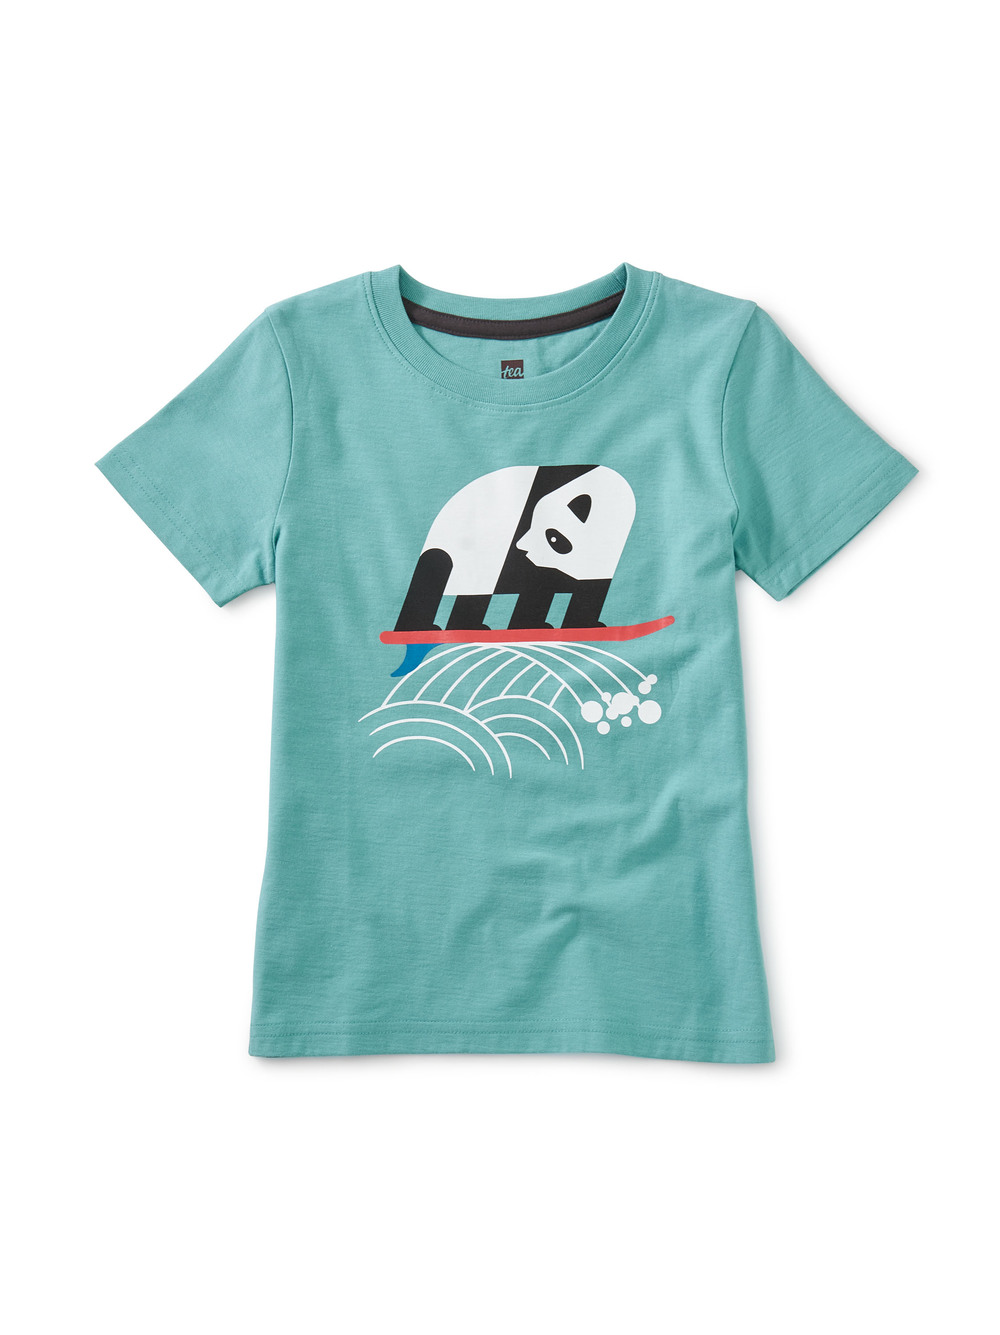 Surf Panda Graphic Tee